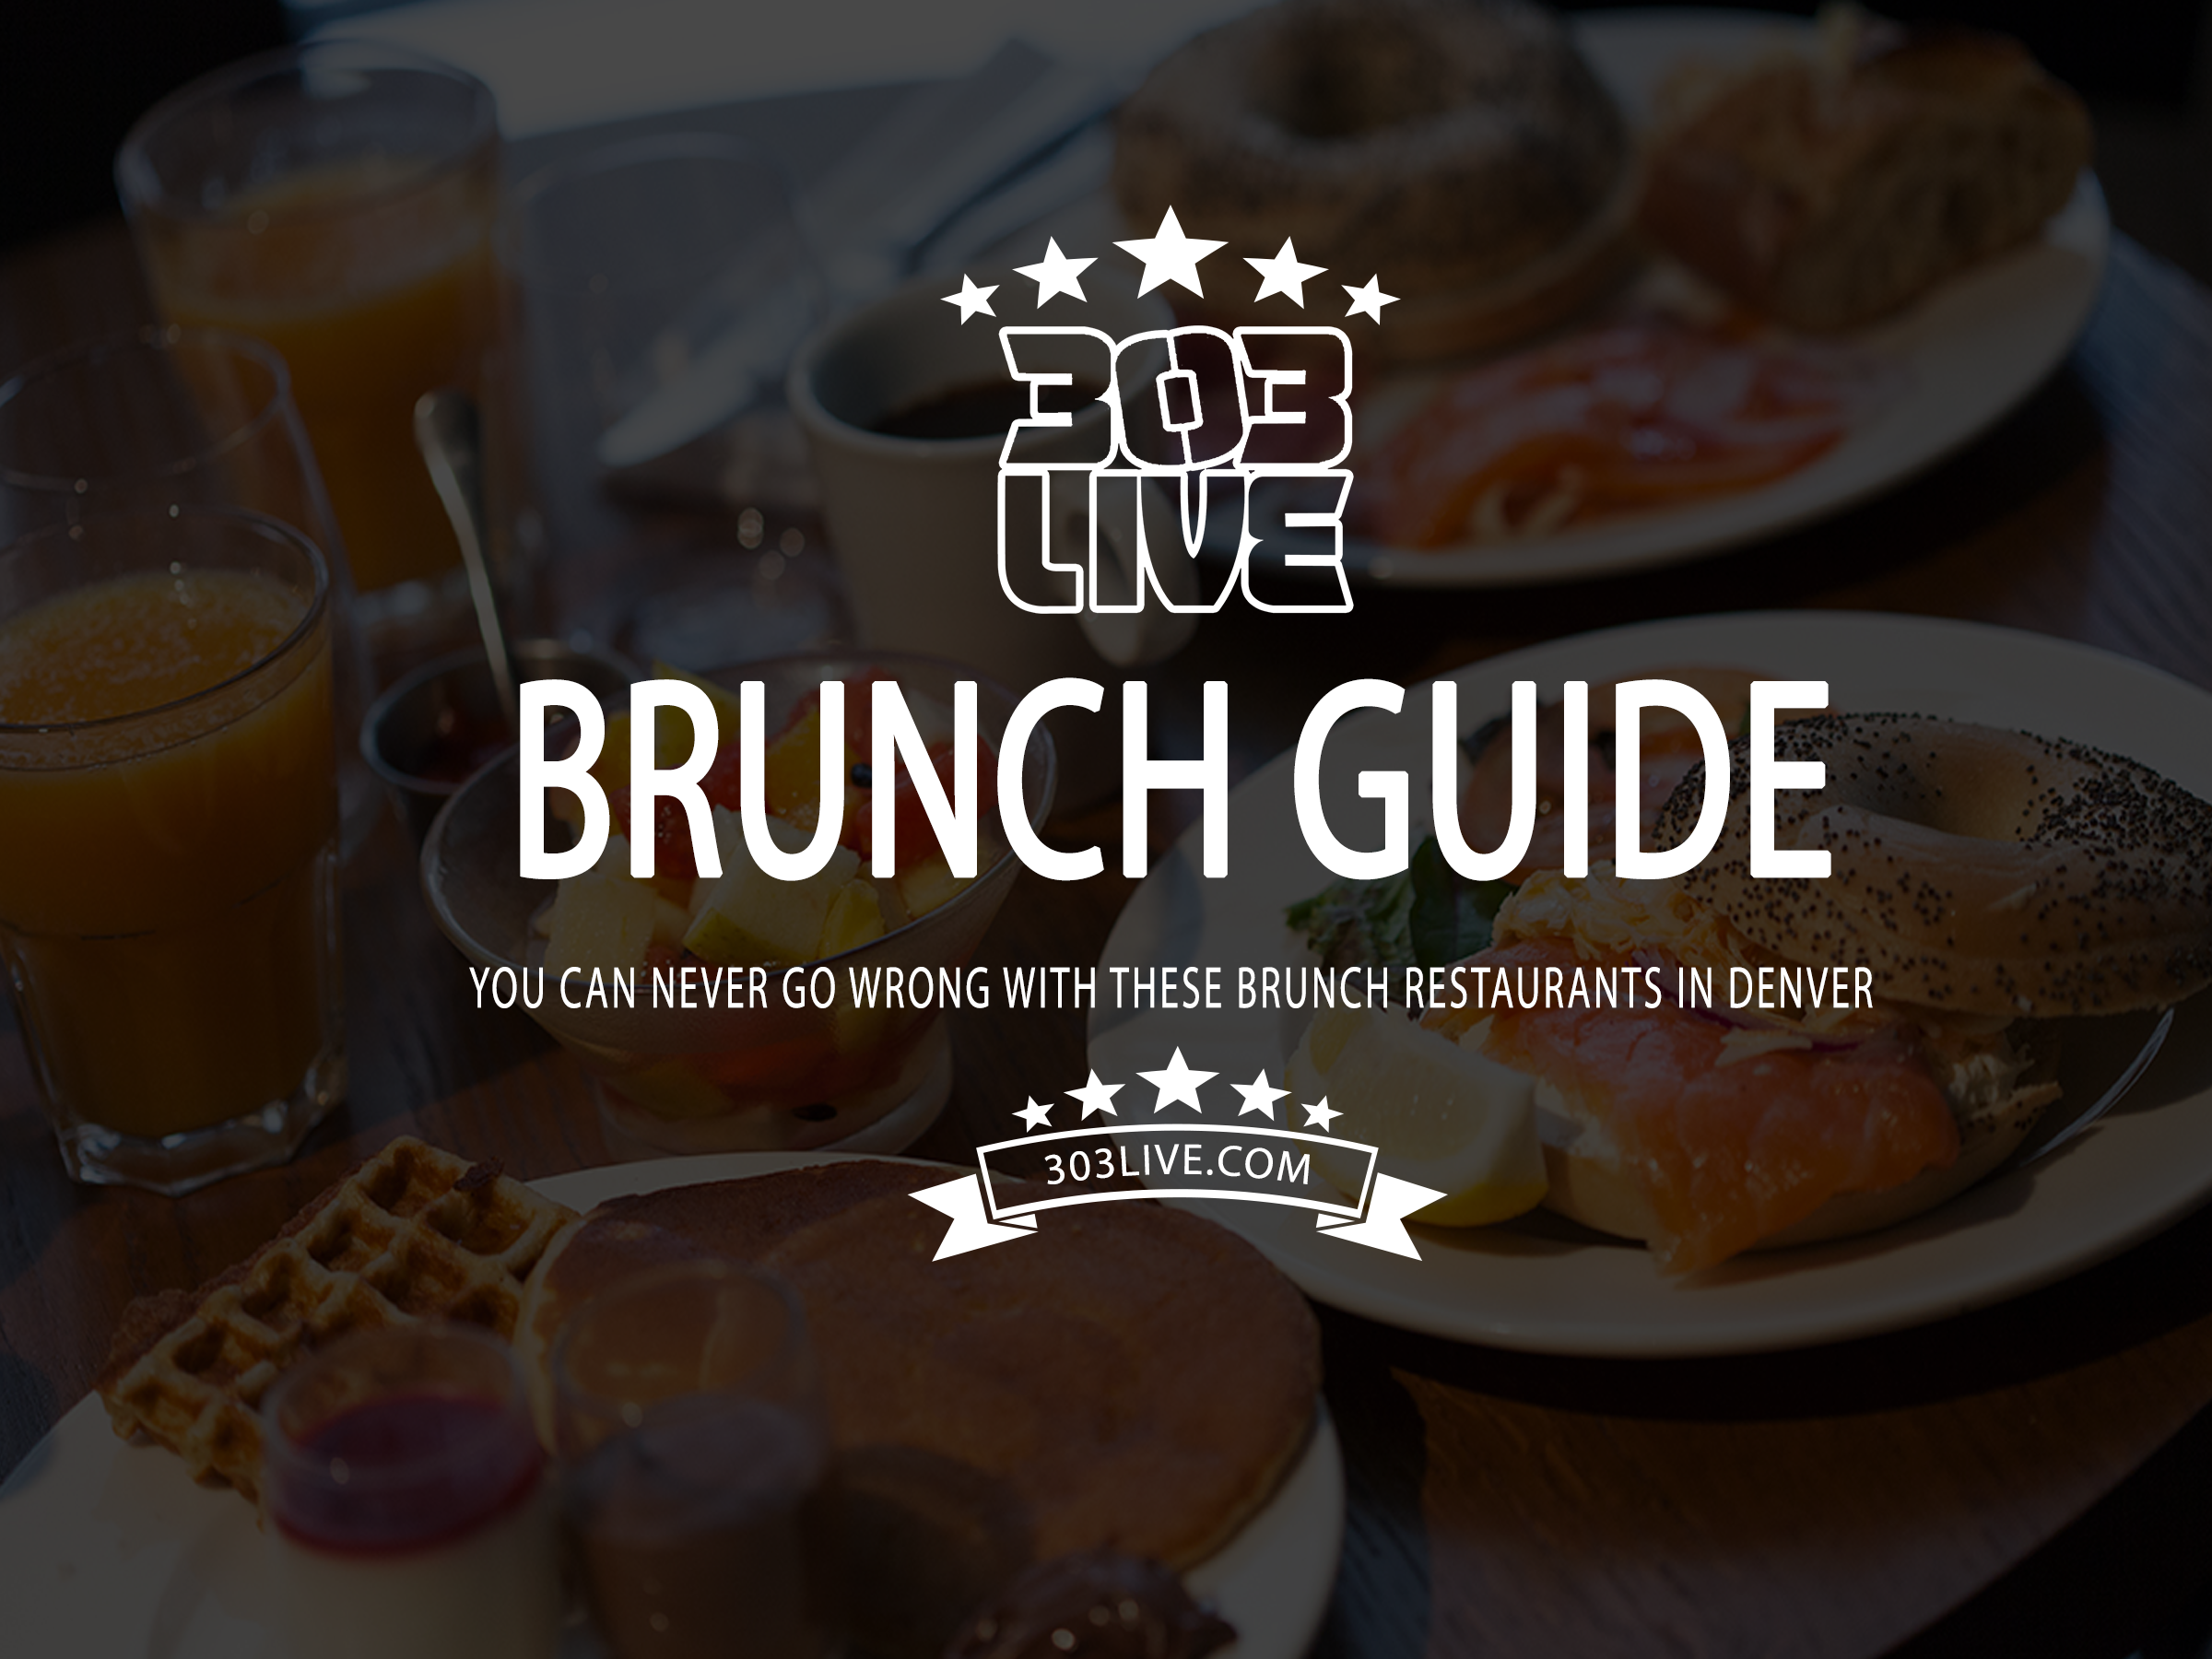 Denver Brunch Guide